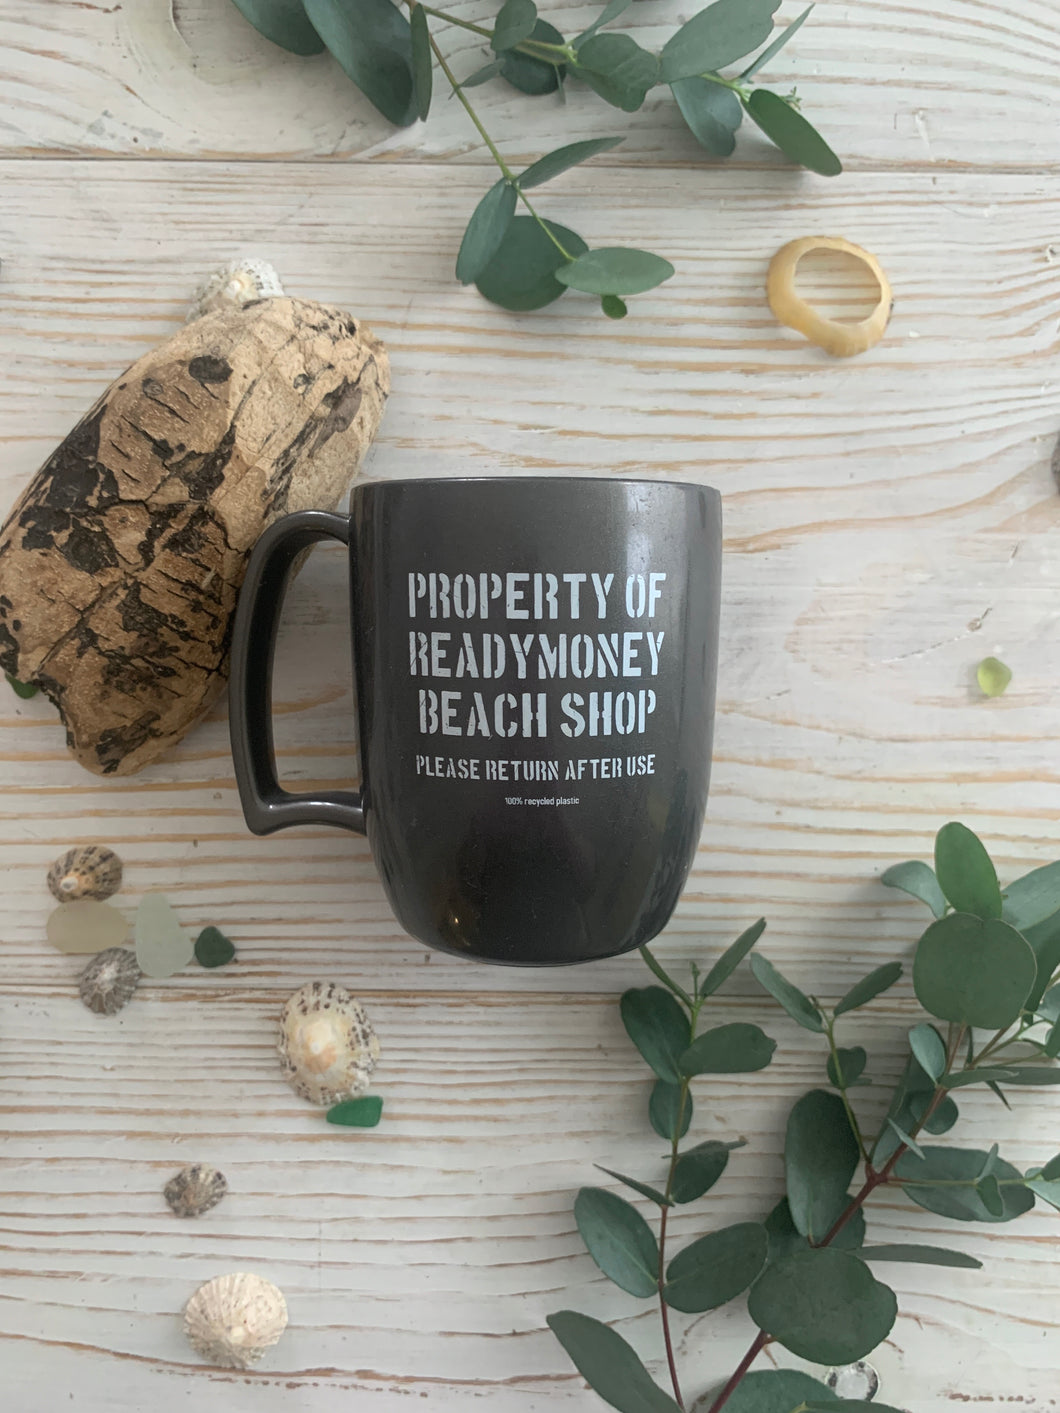 Property of Readymoney Beach Shop mug